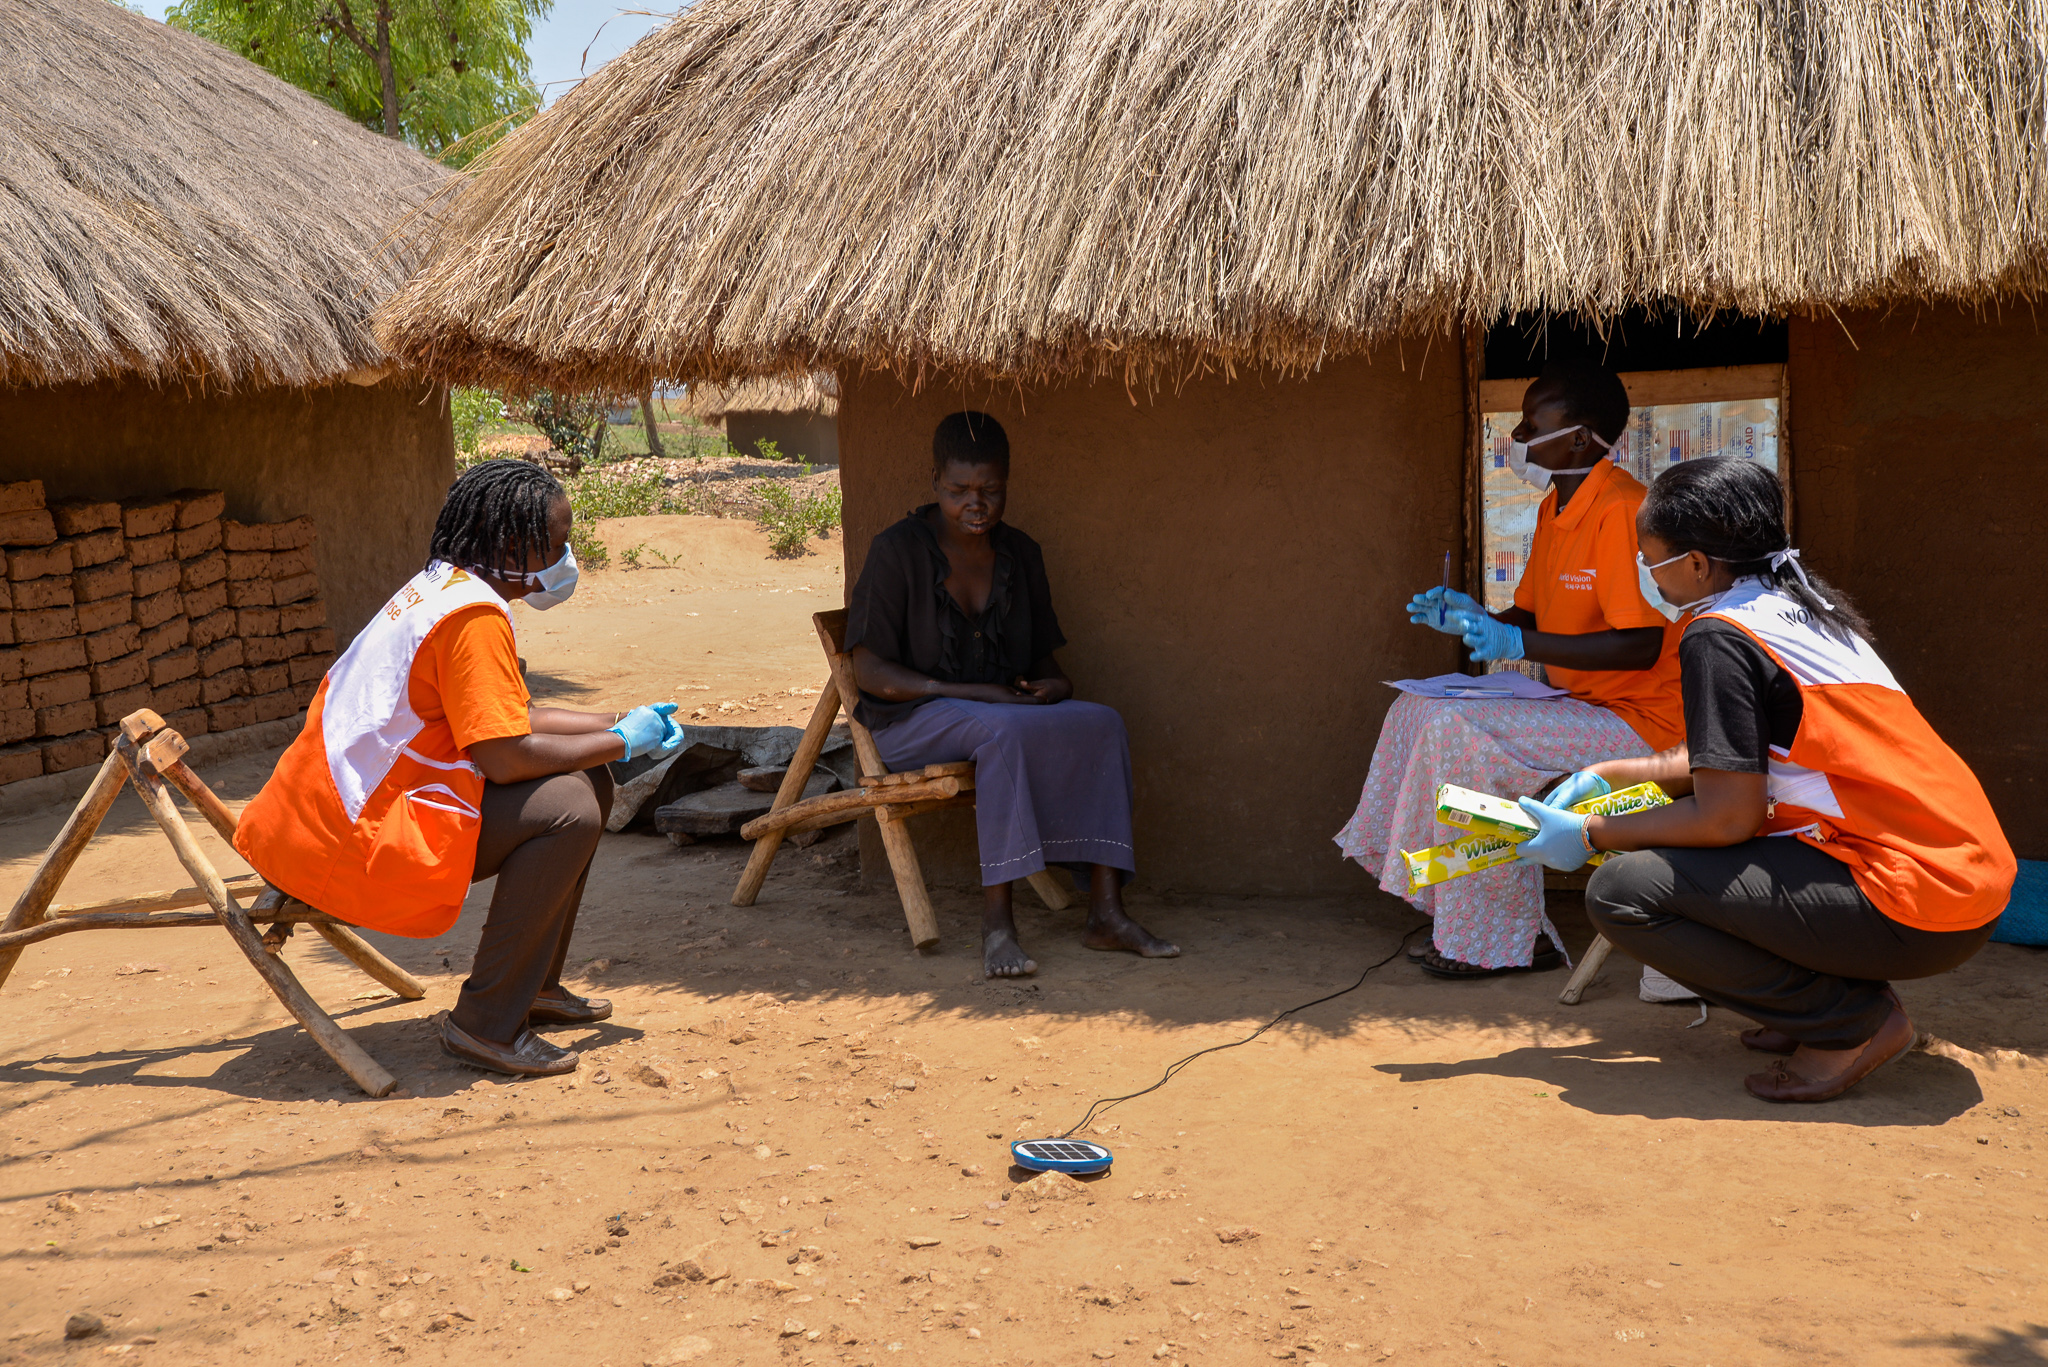 World Vision staff visiting a household in Omugo settlement during soap distribution